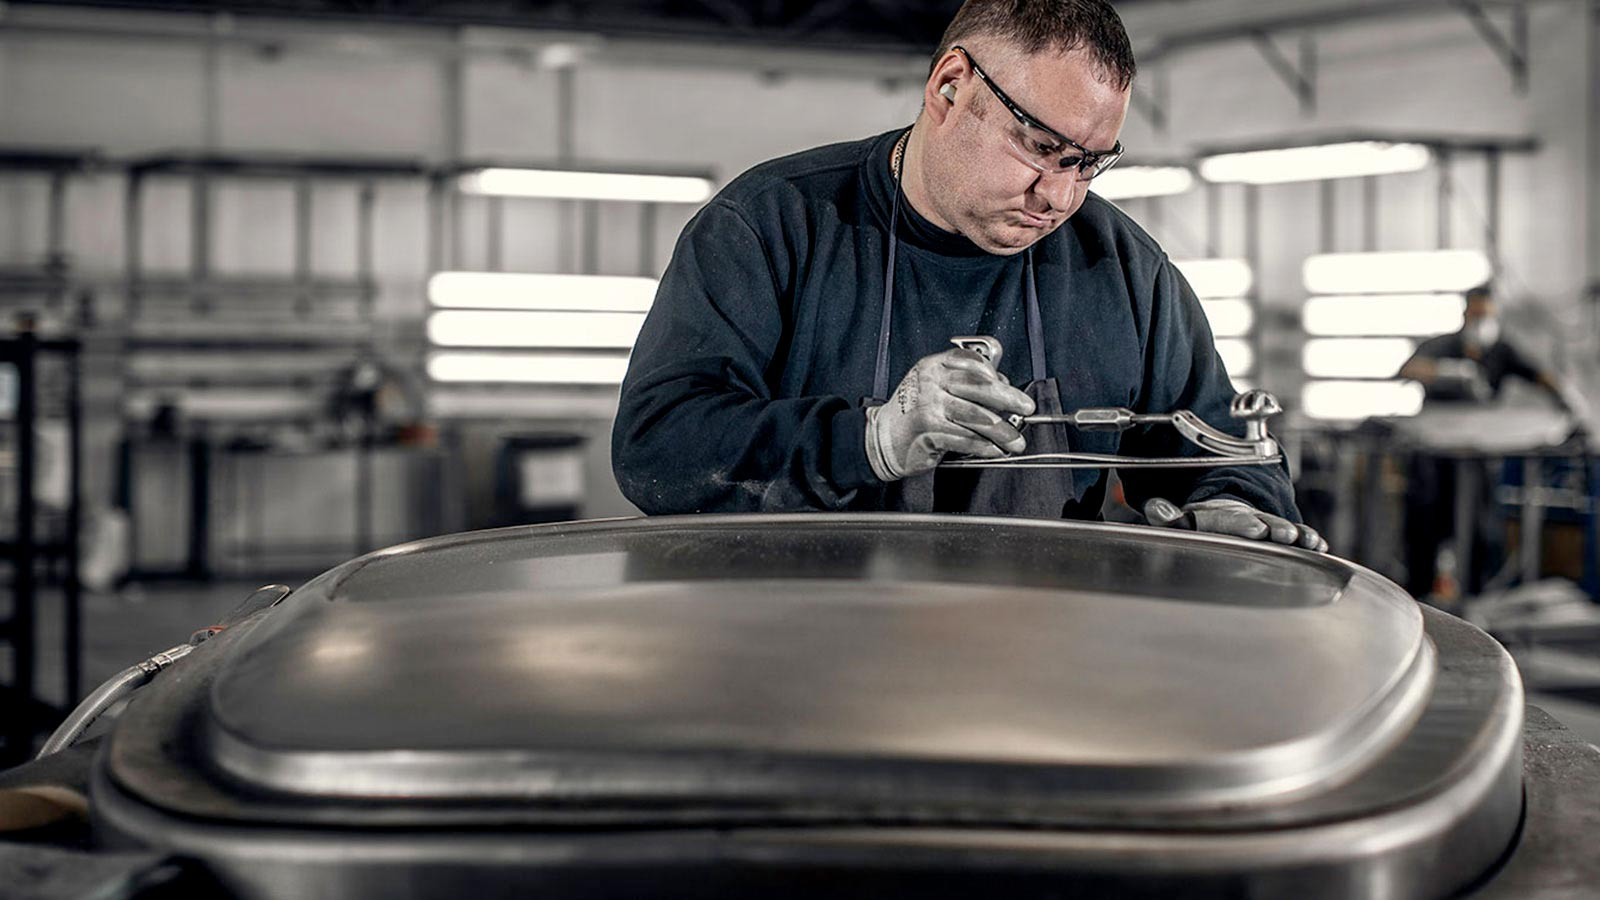 Mechanic working on a metal body-part for a vehicle.